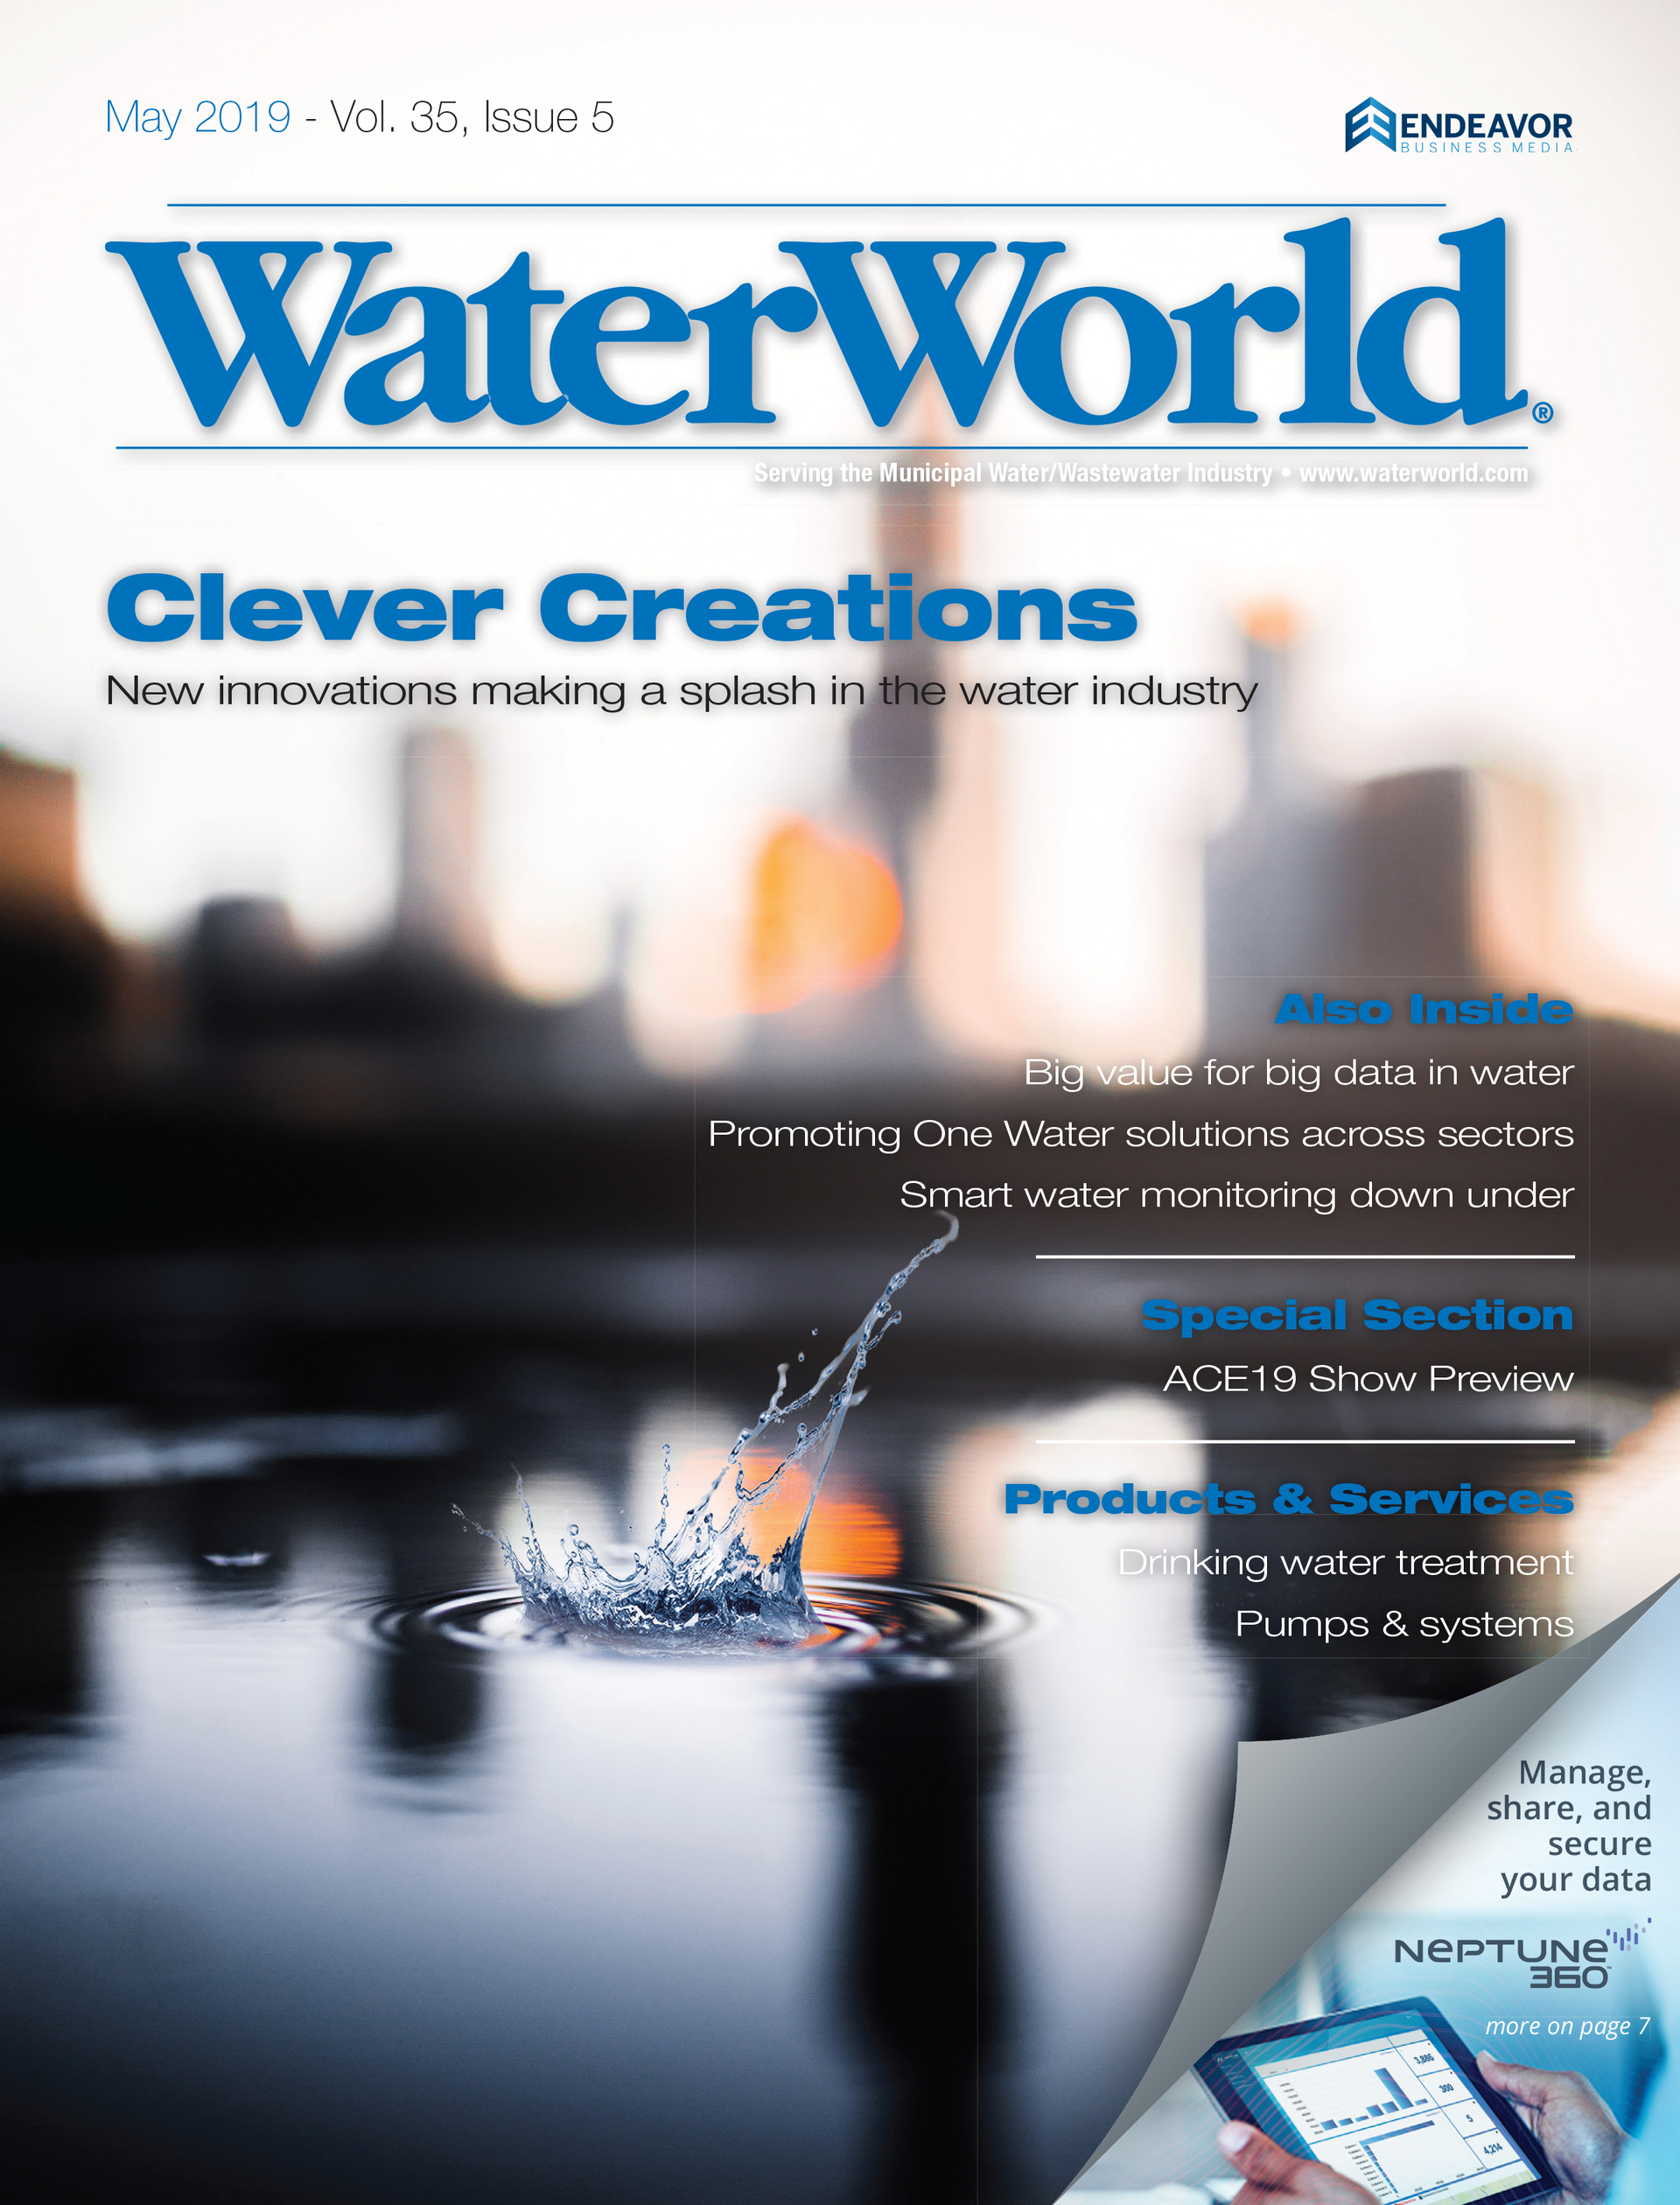 WaterWorld Volume 35, Issue 5